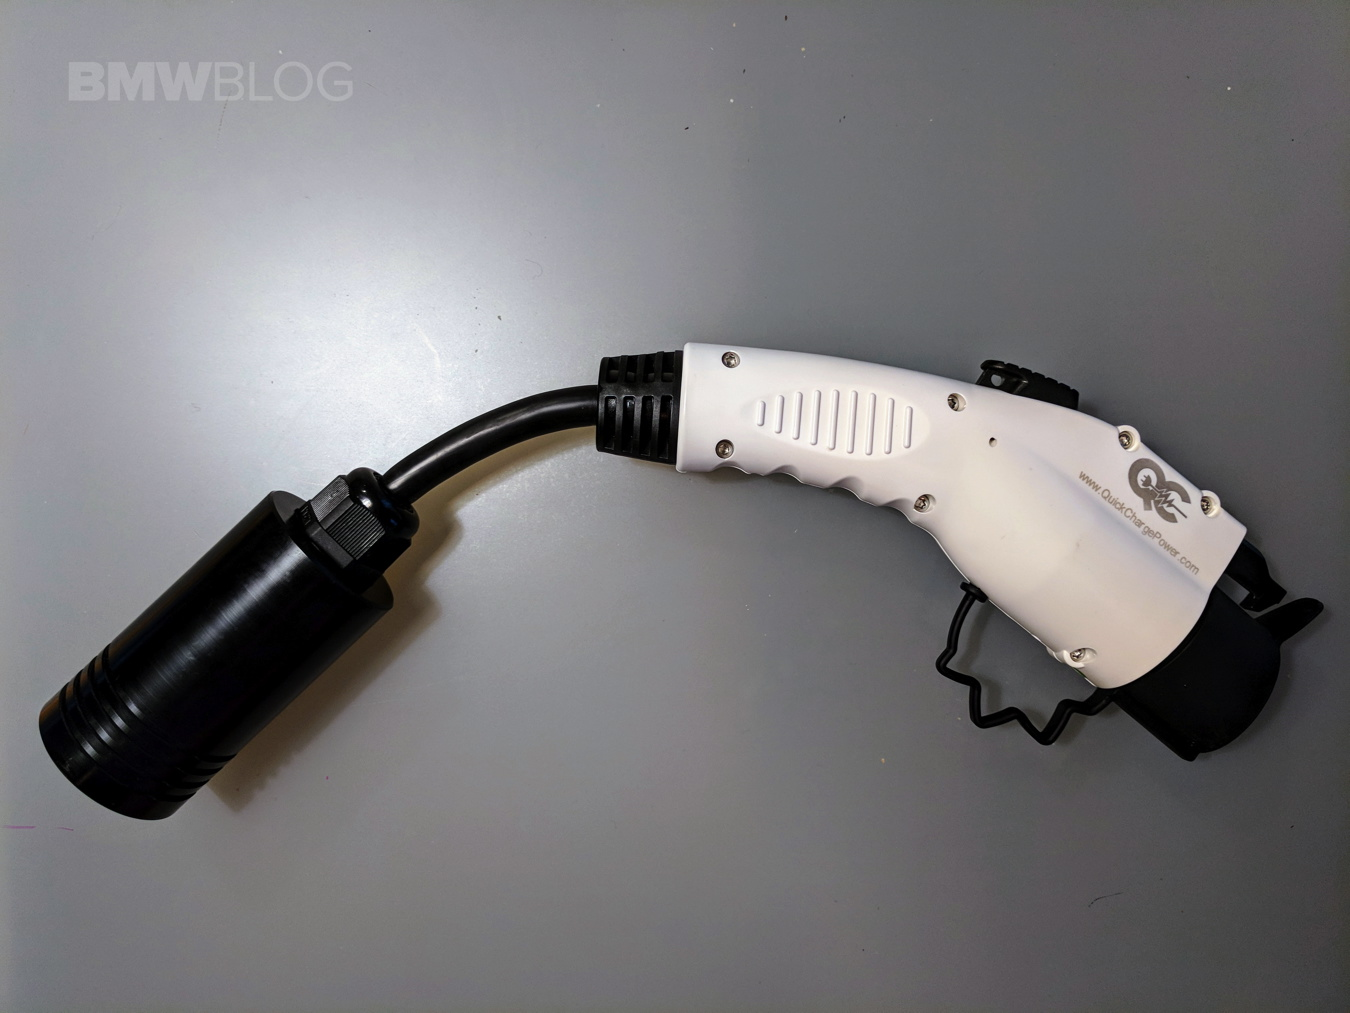 Tesla Charger Type >> New Adapter Allows BMW Plug-Ins to Use Tesla Destination Chargers